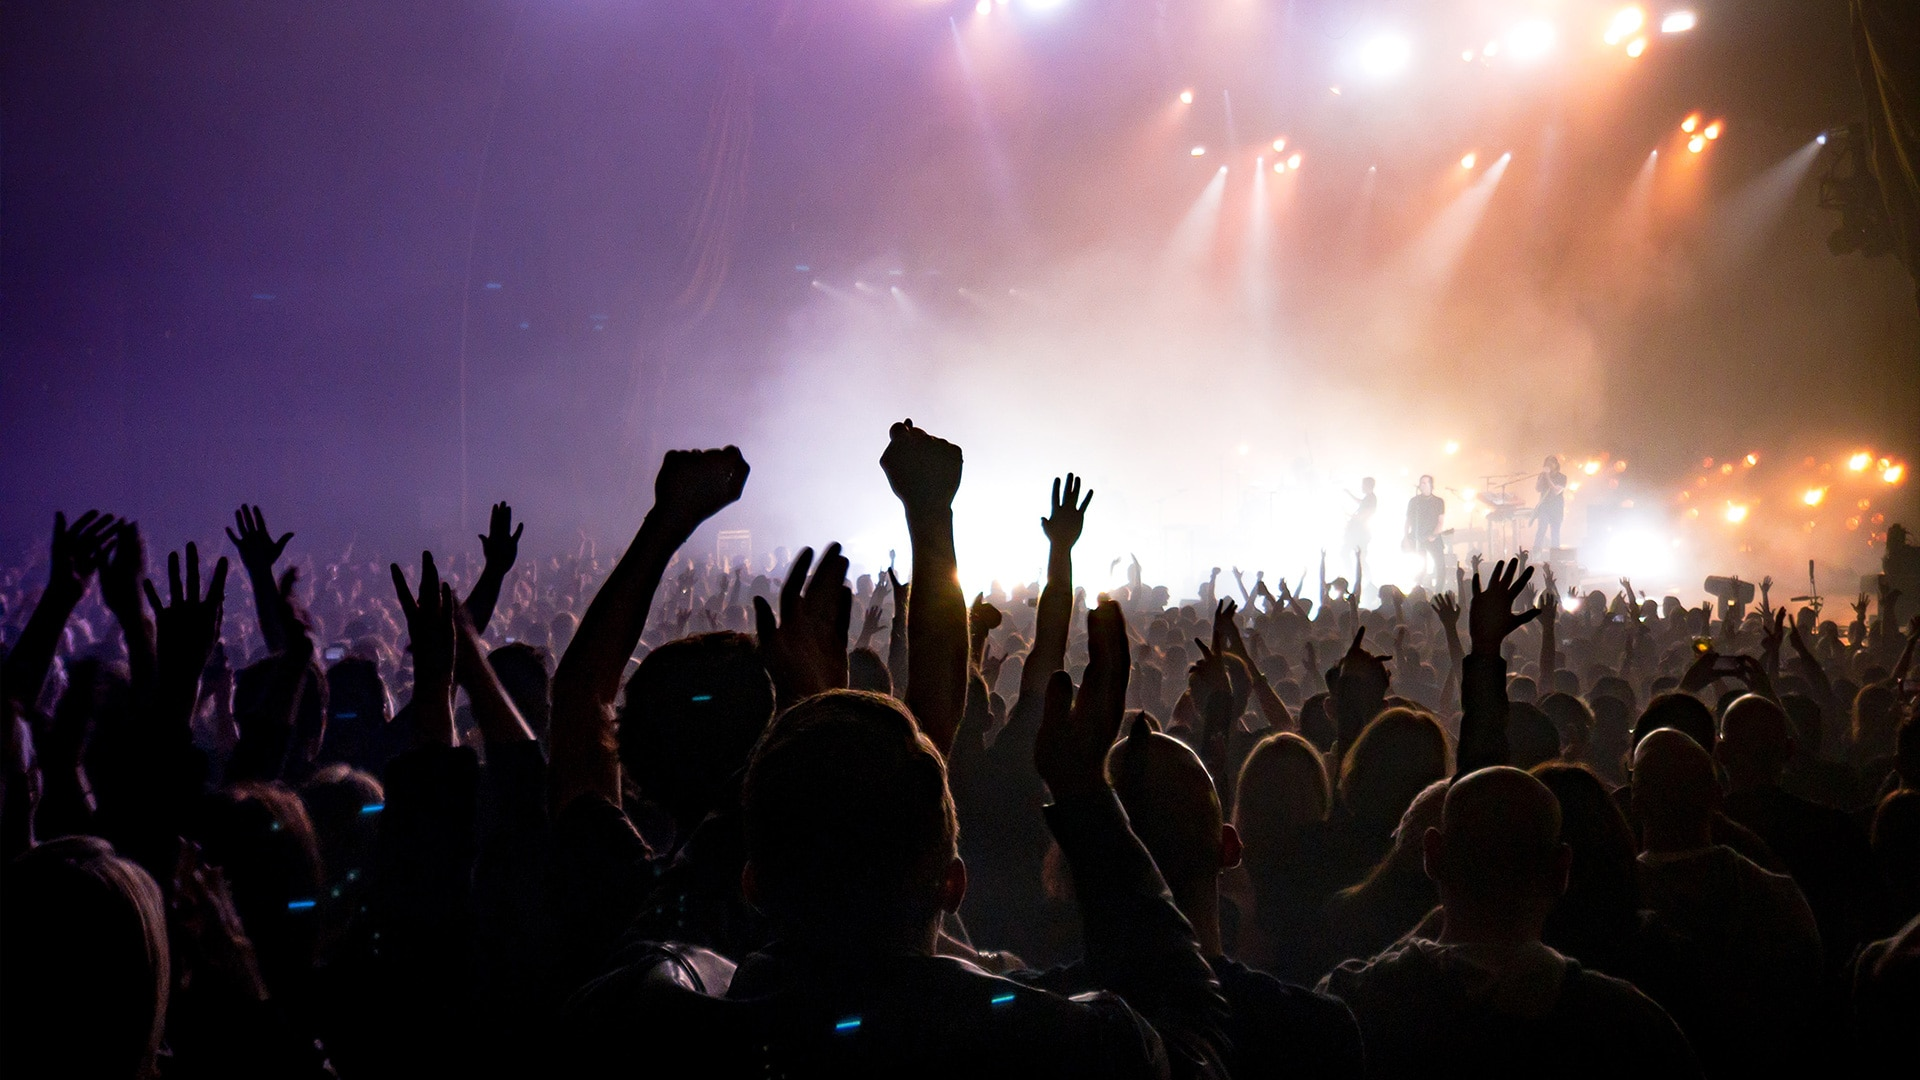 Image of a Concert